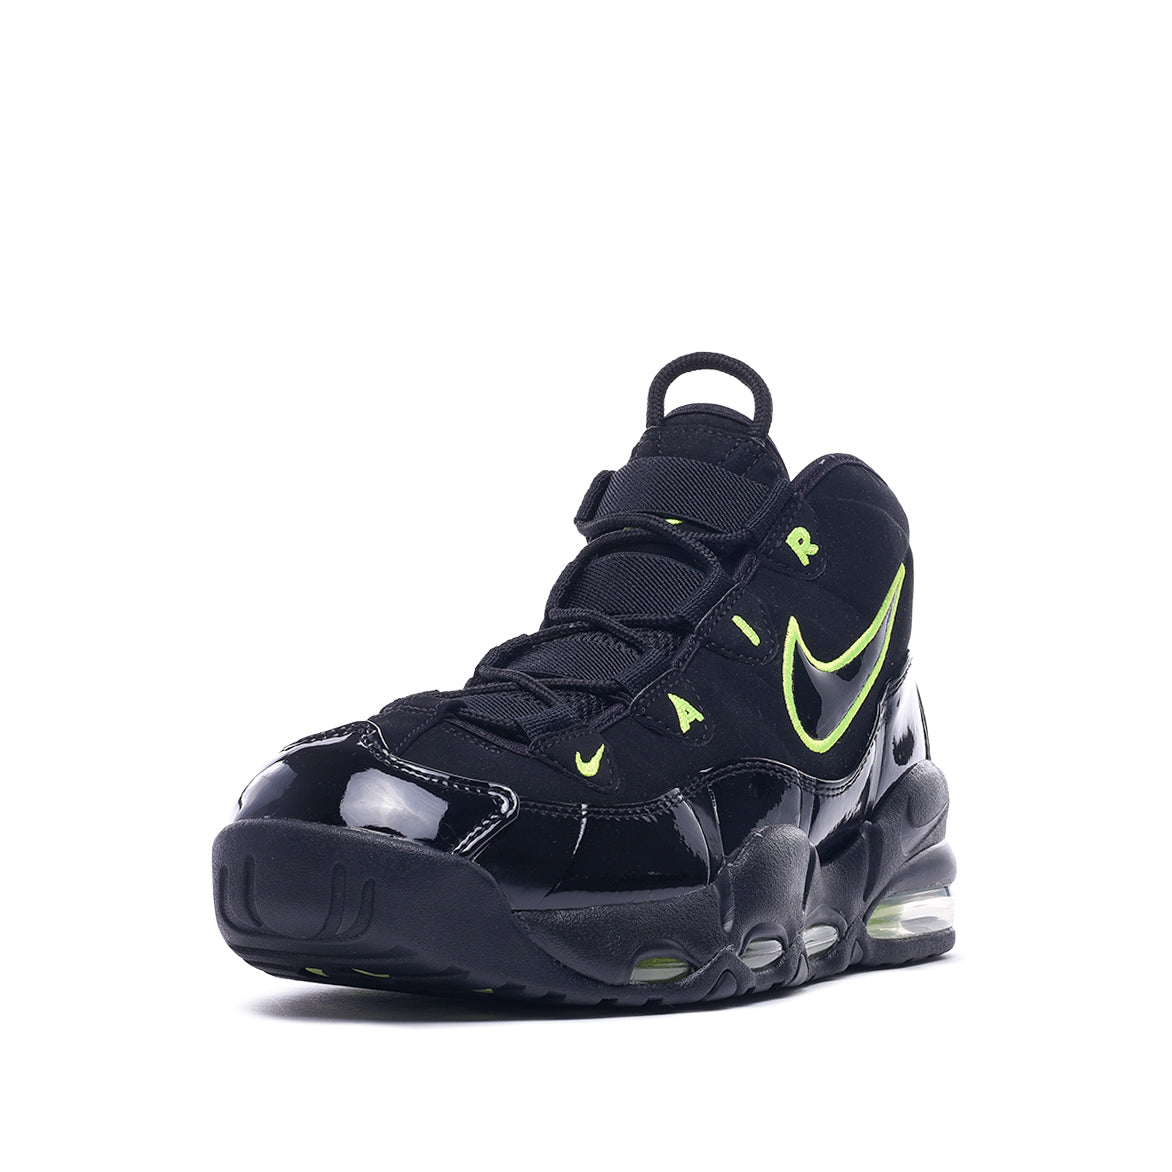 AIR MAX UPTEMPO '95 - BLACK / VOLT